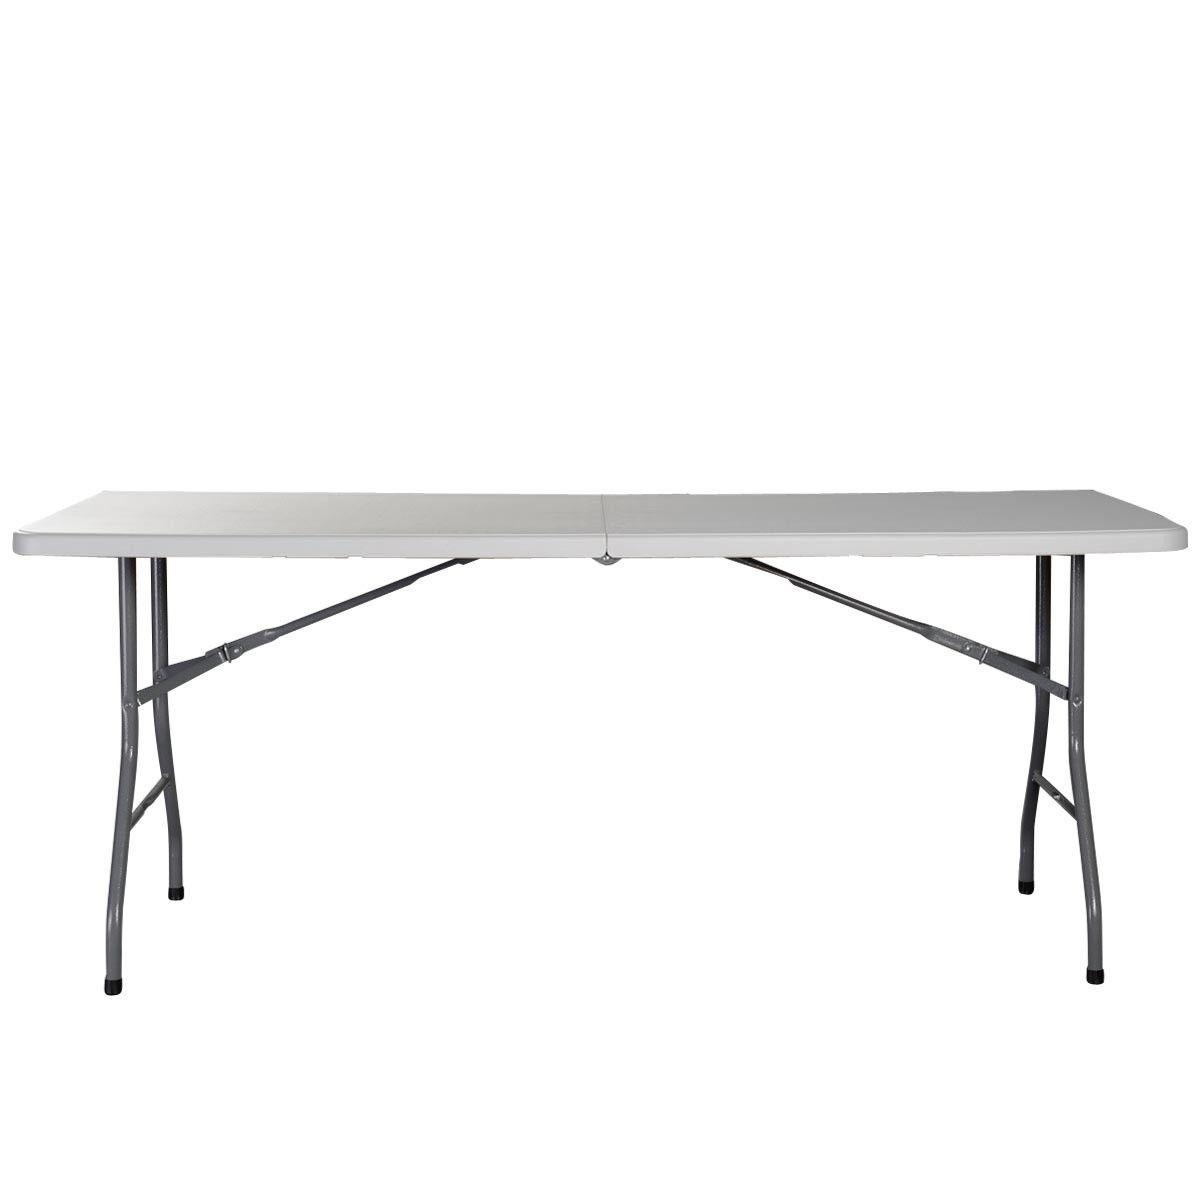 6 Ft Square Dining Table 6 Ft Portable Folding Table Outdoor Picnic Plastic Camping